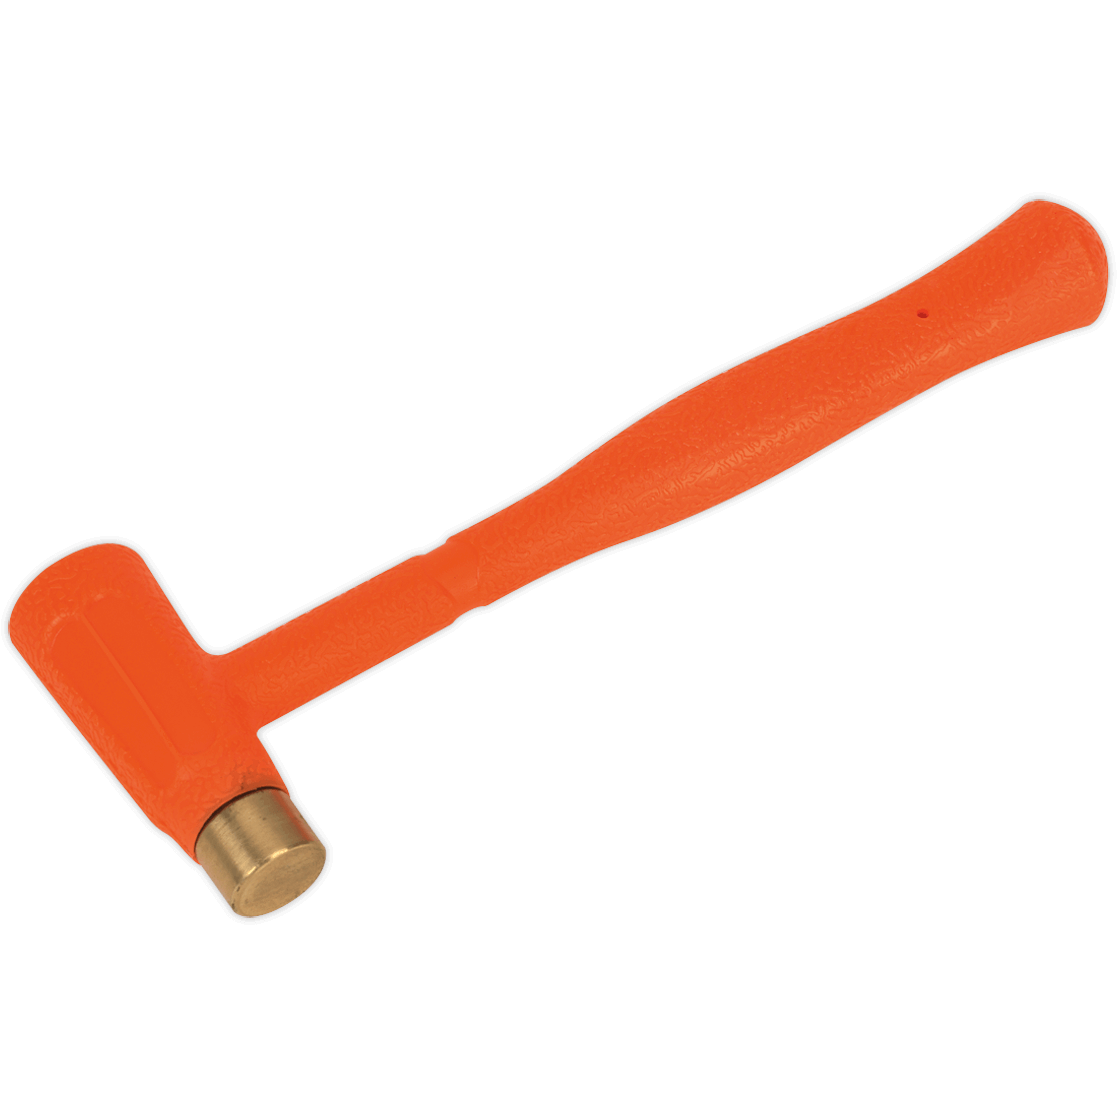 Sealey Brass Face Dead Blow Hammer Dead Blow Hammers Get the best deal for dead blow hammers from the largest online selection at ebay.com. tooled up com